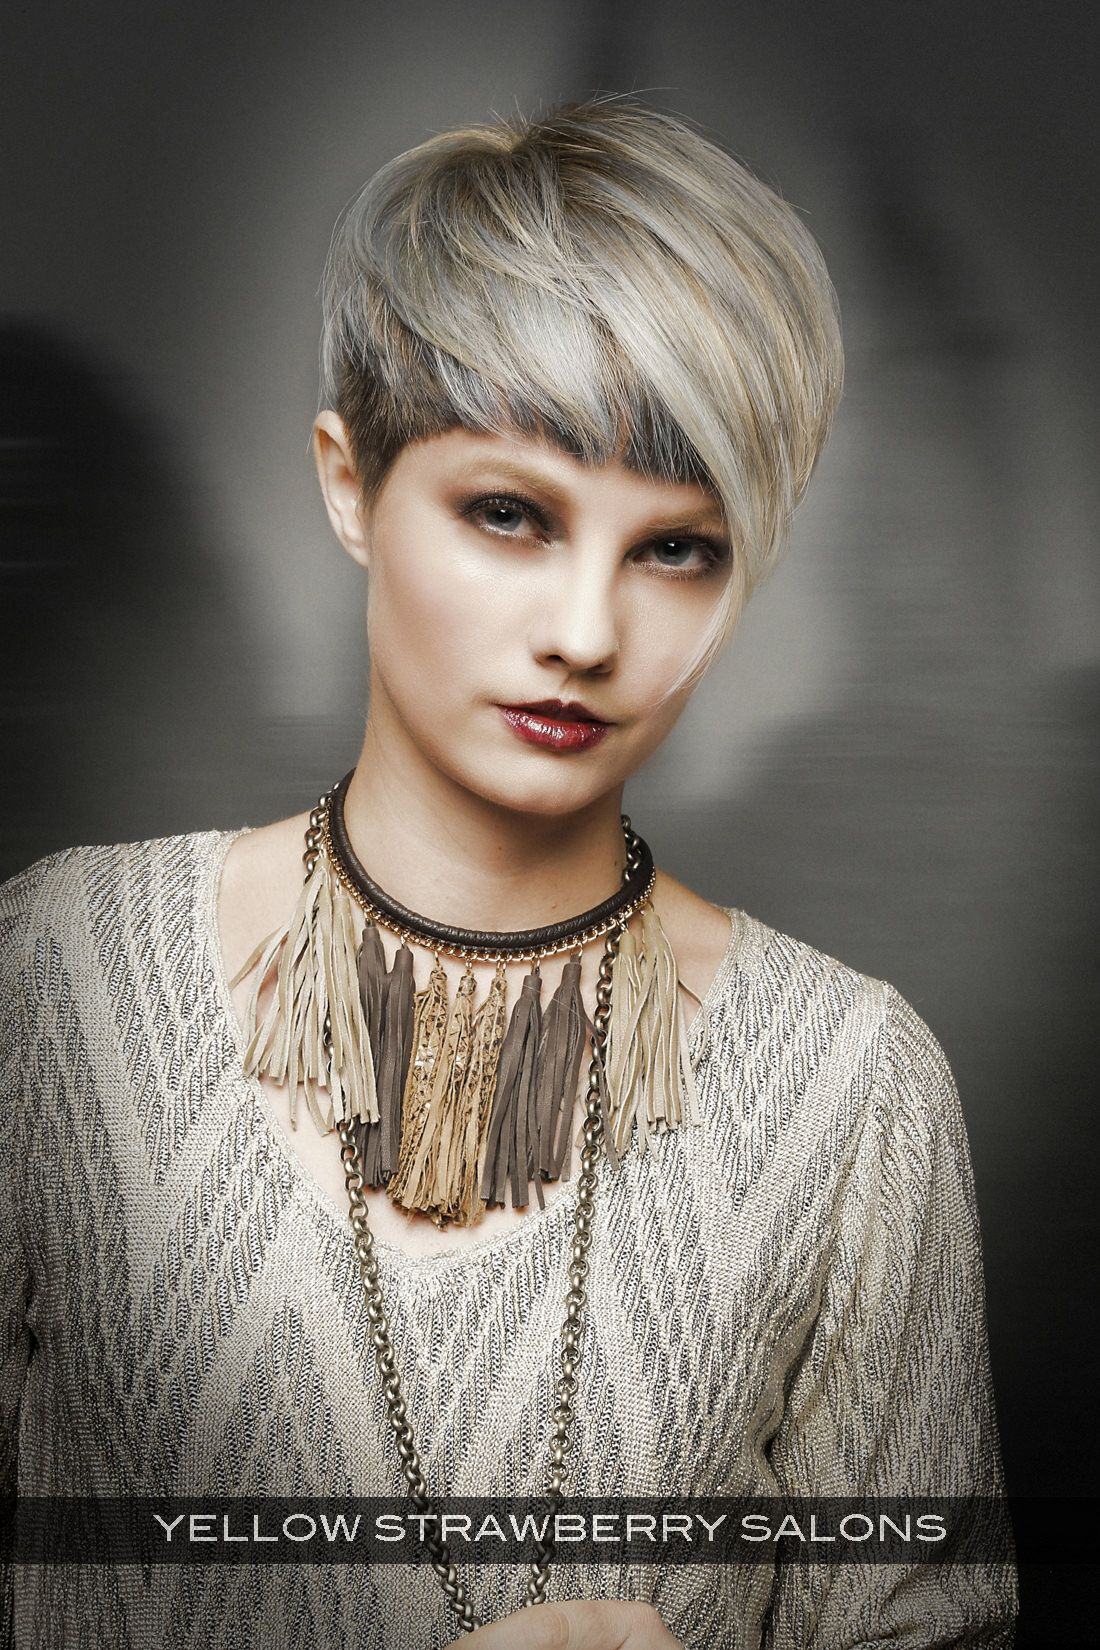 Bowl cut haircut men ombre hair color trends  is the silver grannyhair style  haircuts